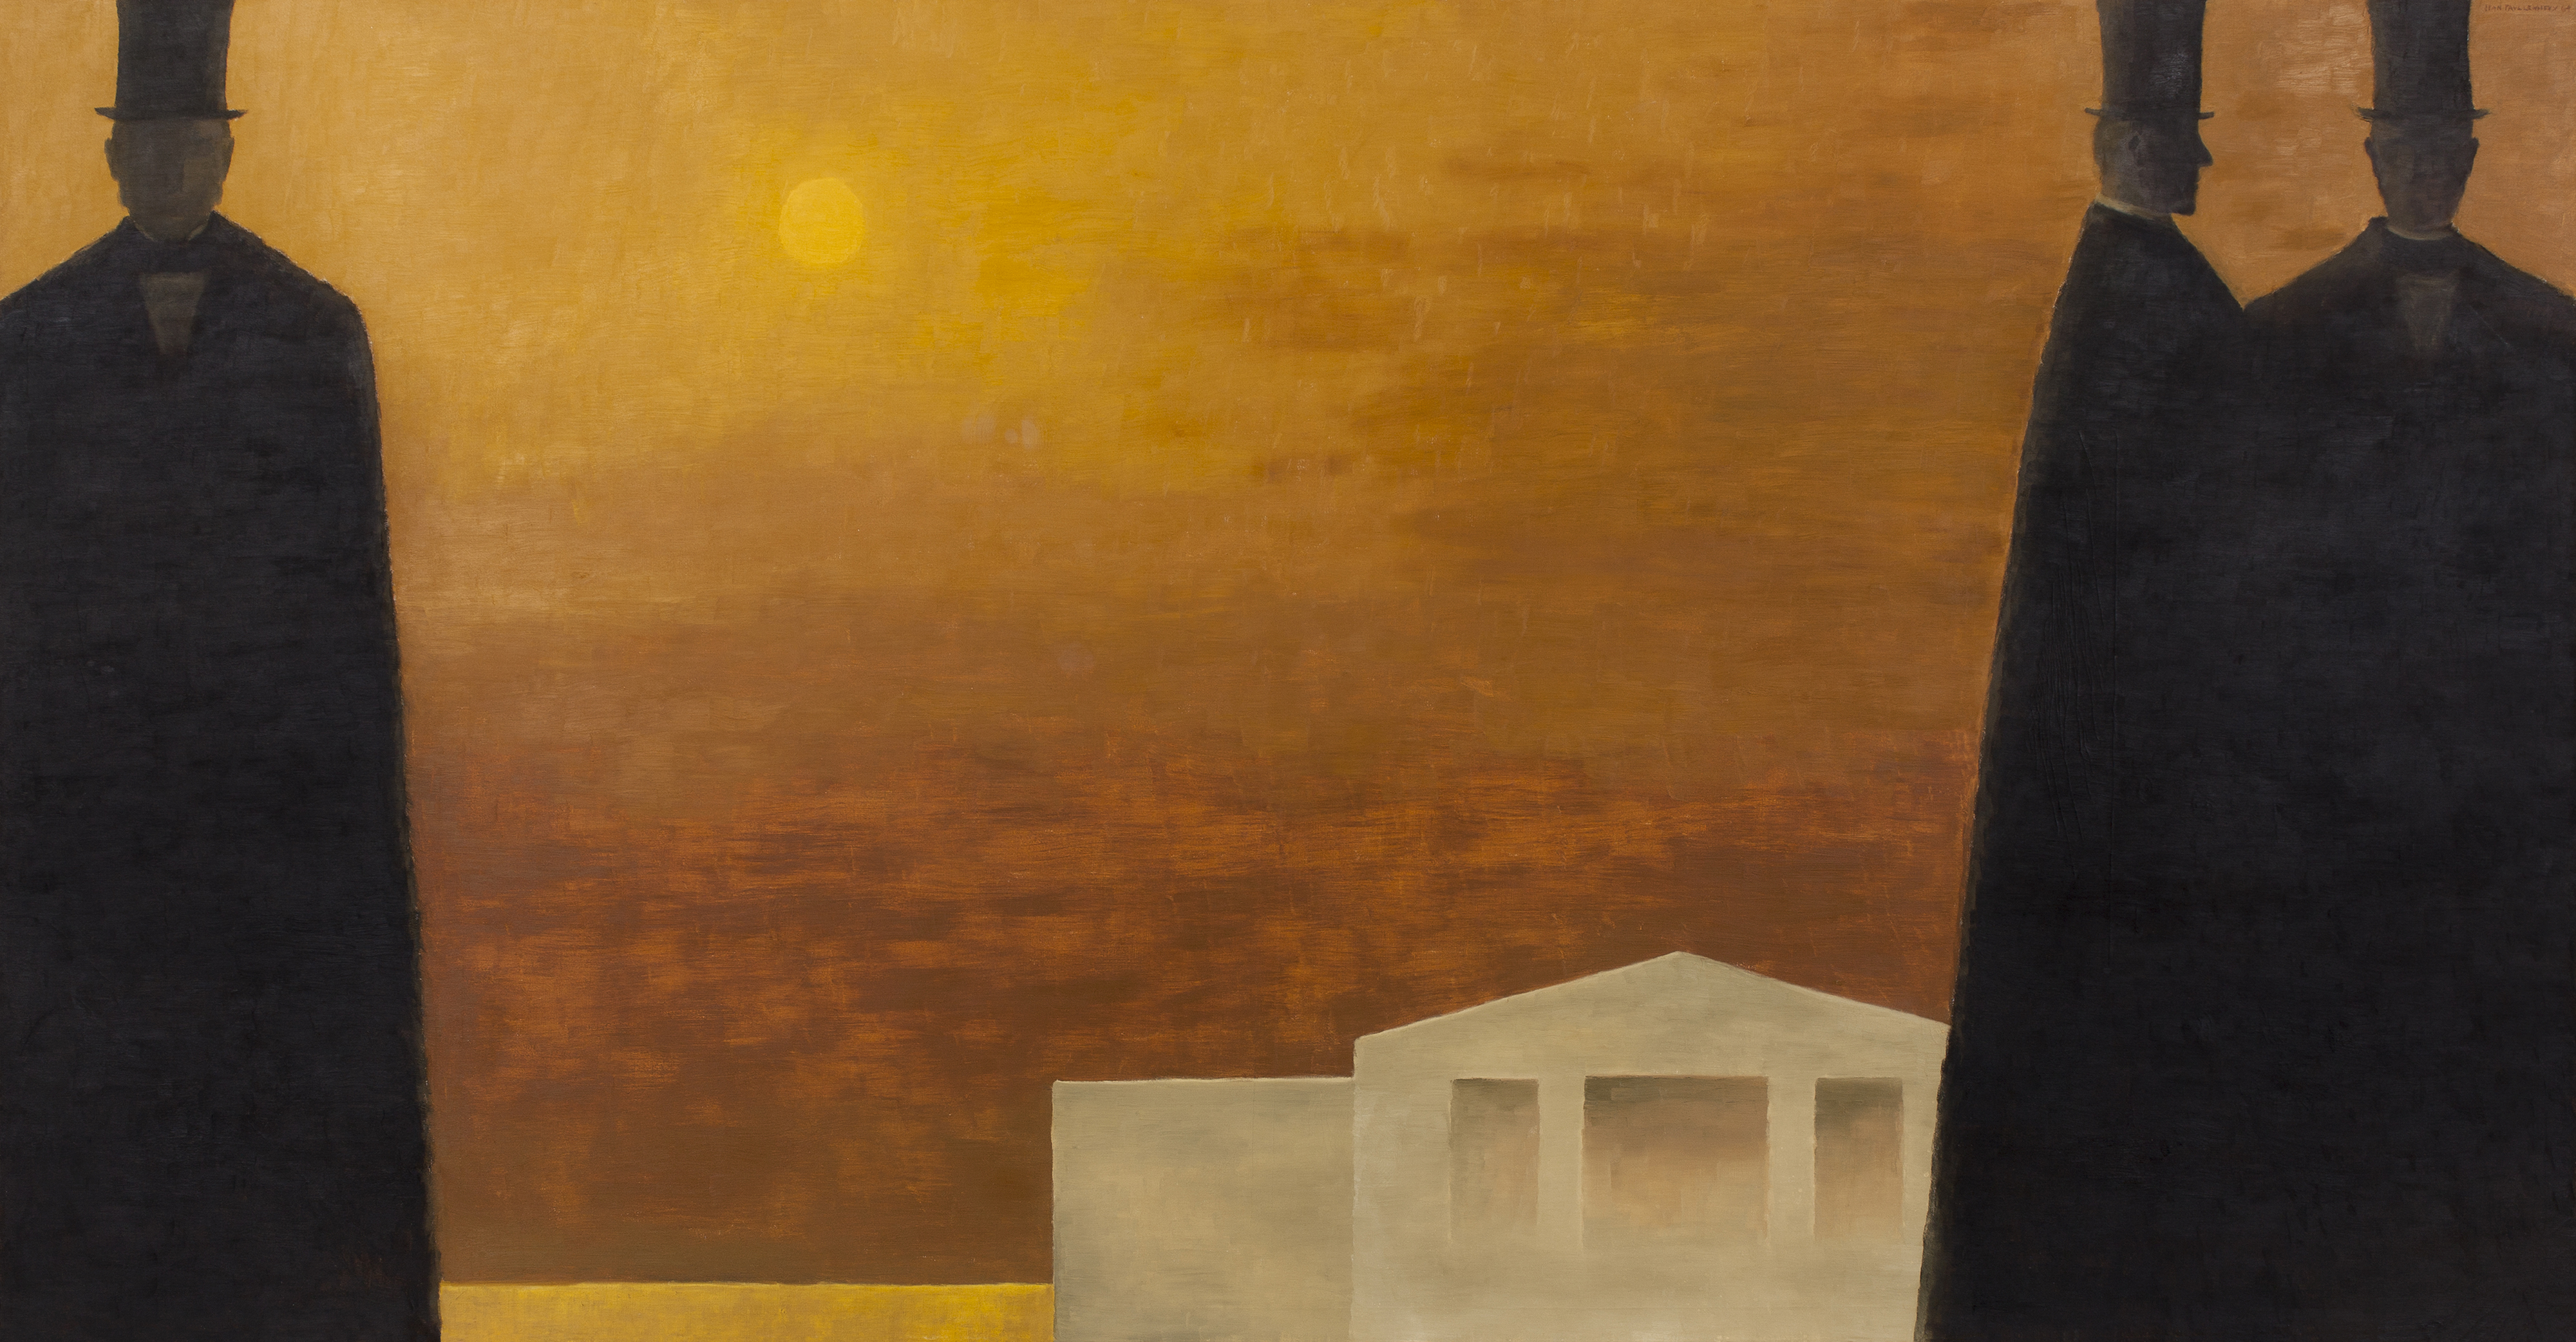 The black silhouettes of three men occupy the foreground of a large horizontal composition. A white building and an orangey sky are in the background. One figure stands at the left while the other two are at the right, leaving the centre empty.